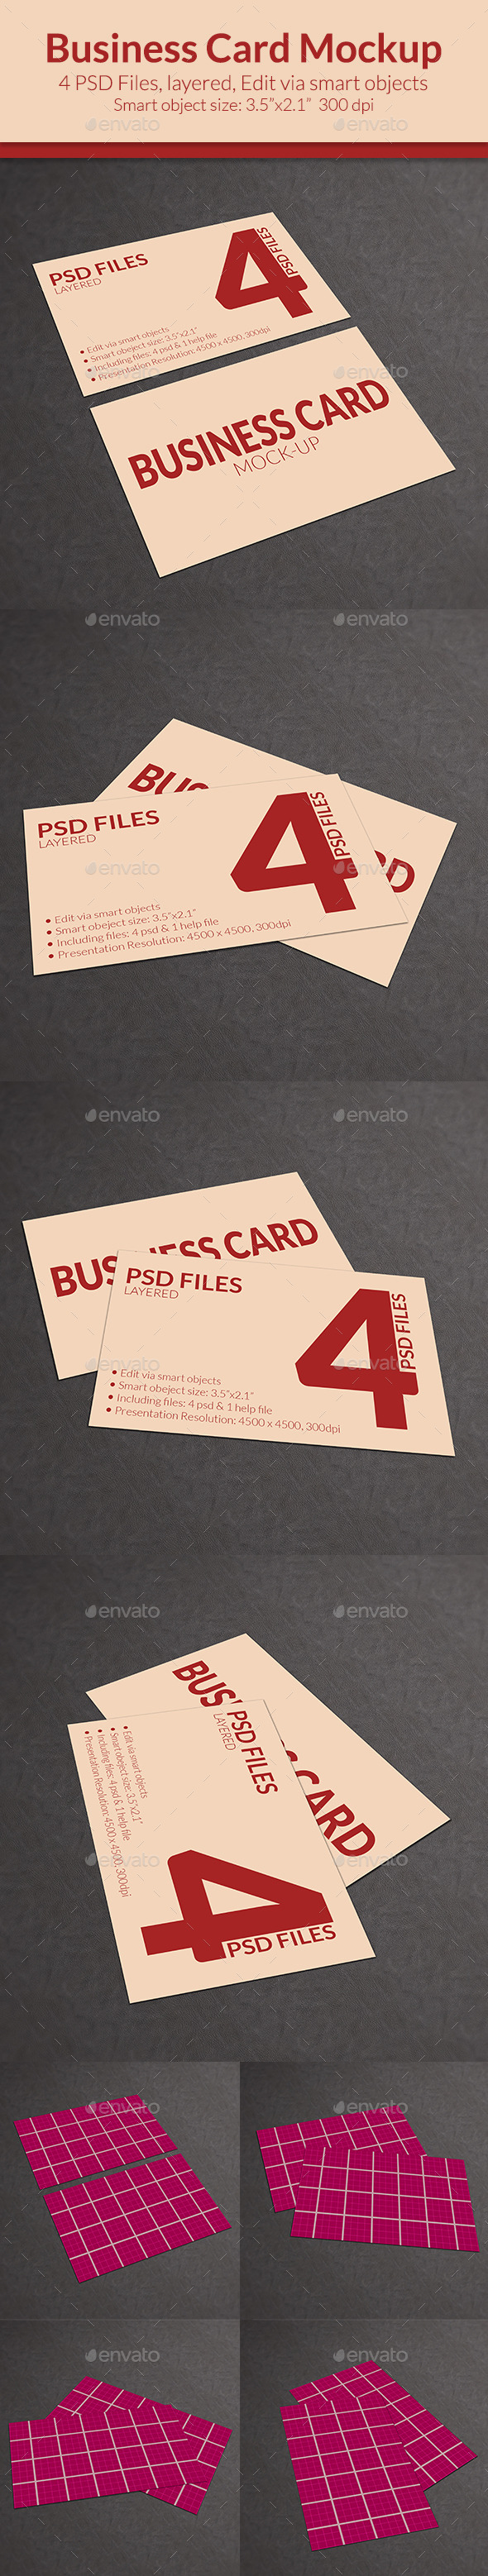 GraphicRiver Business Card Mock-up SS-15 11551936